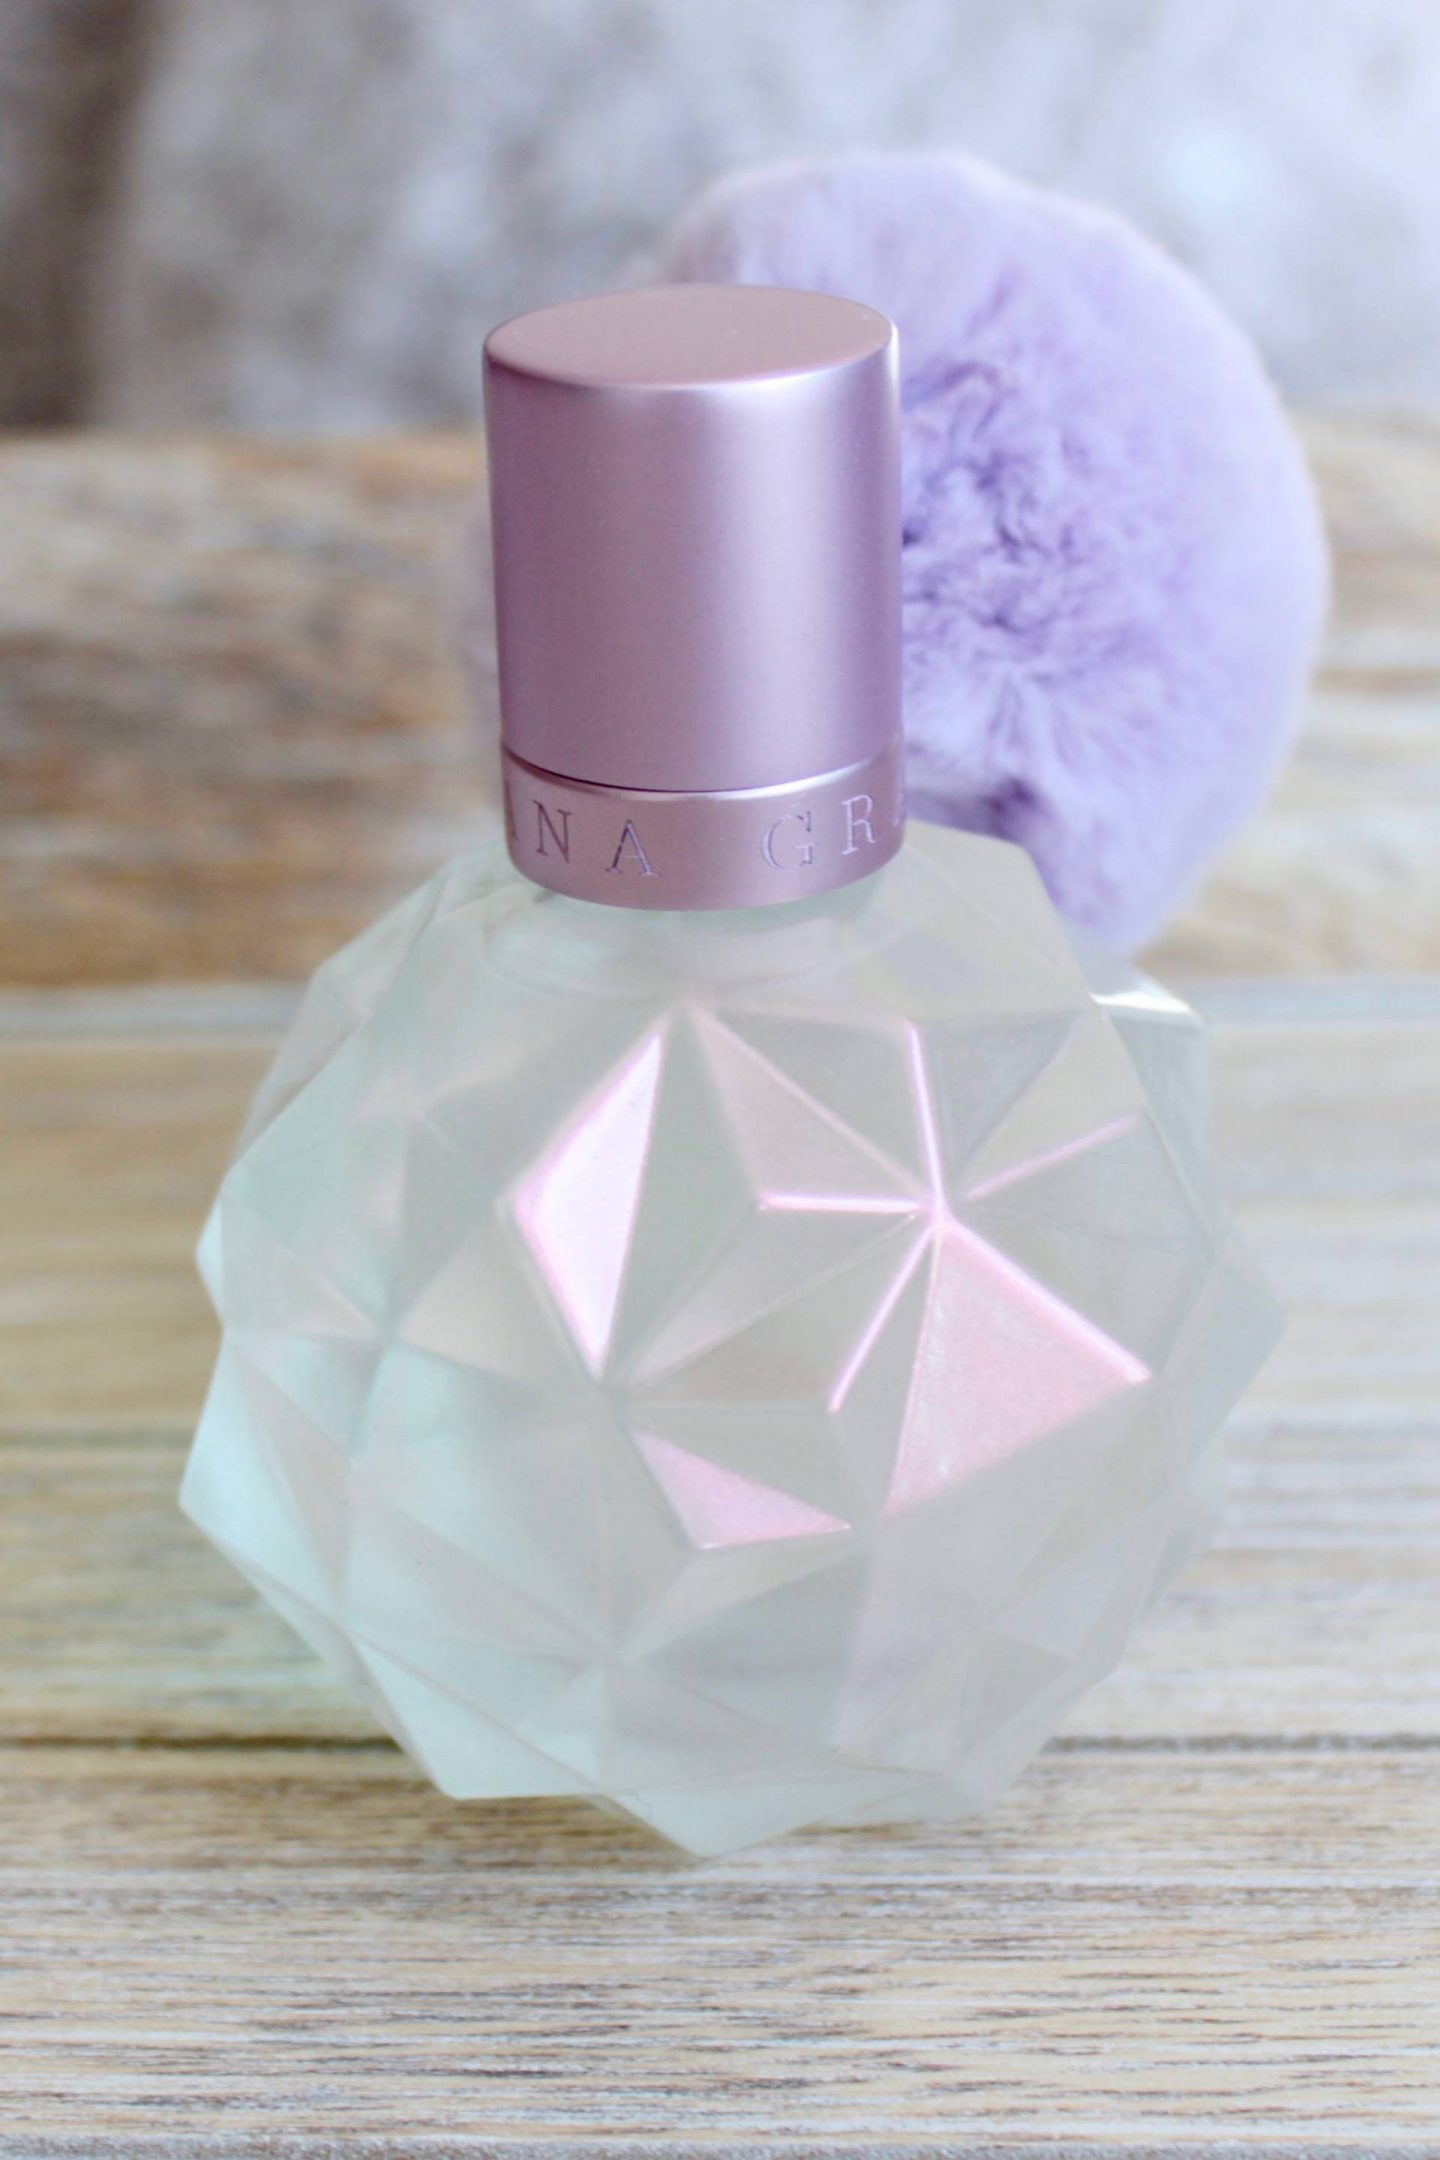 Moonlight EDT holographic bottle